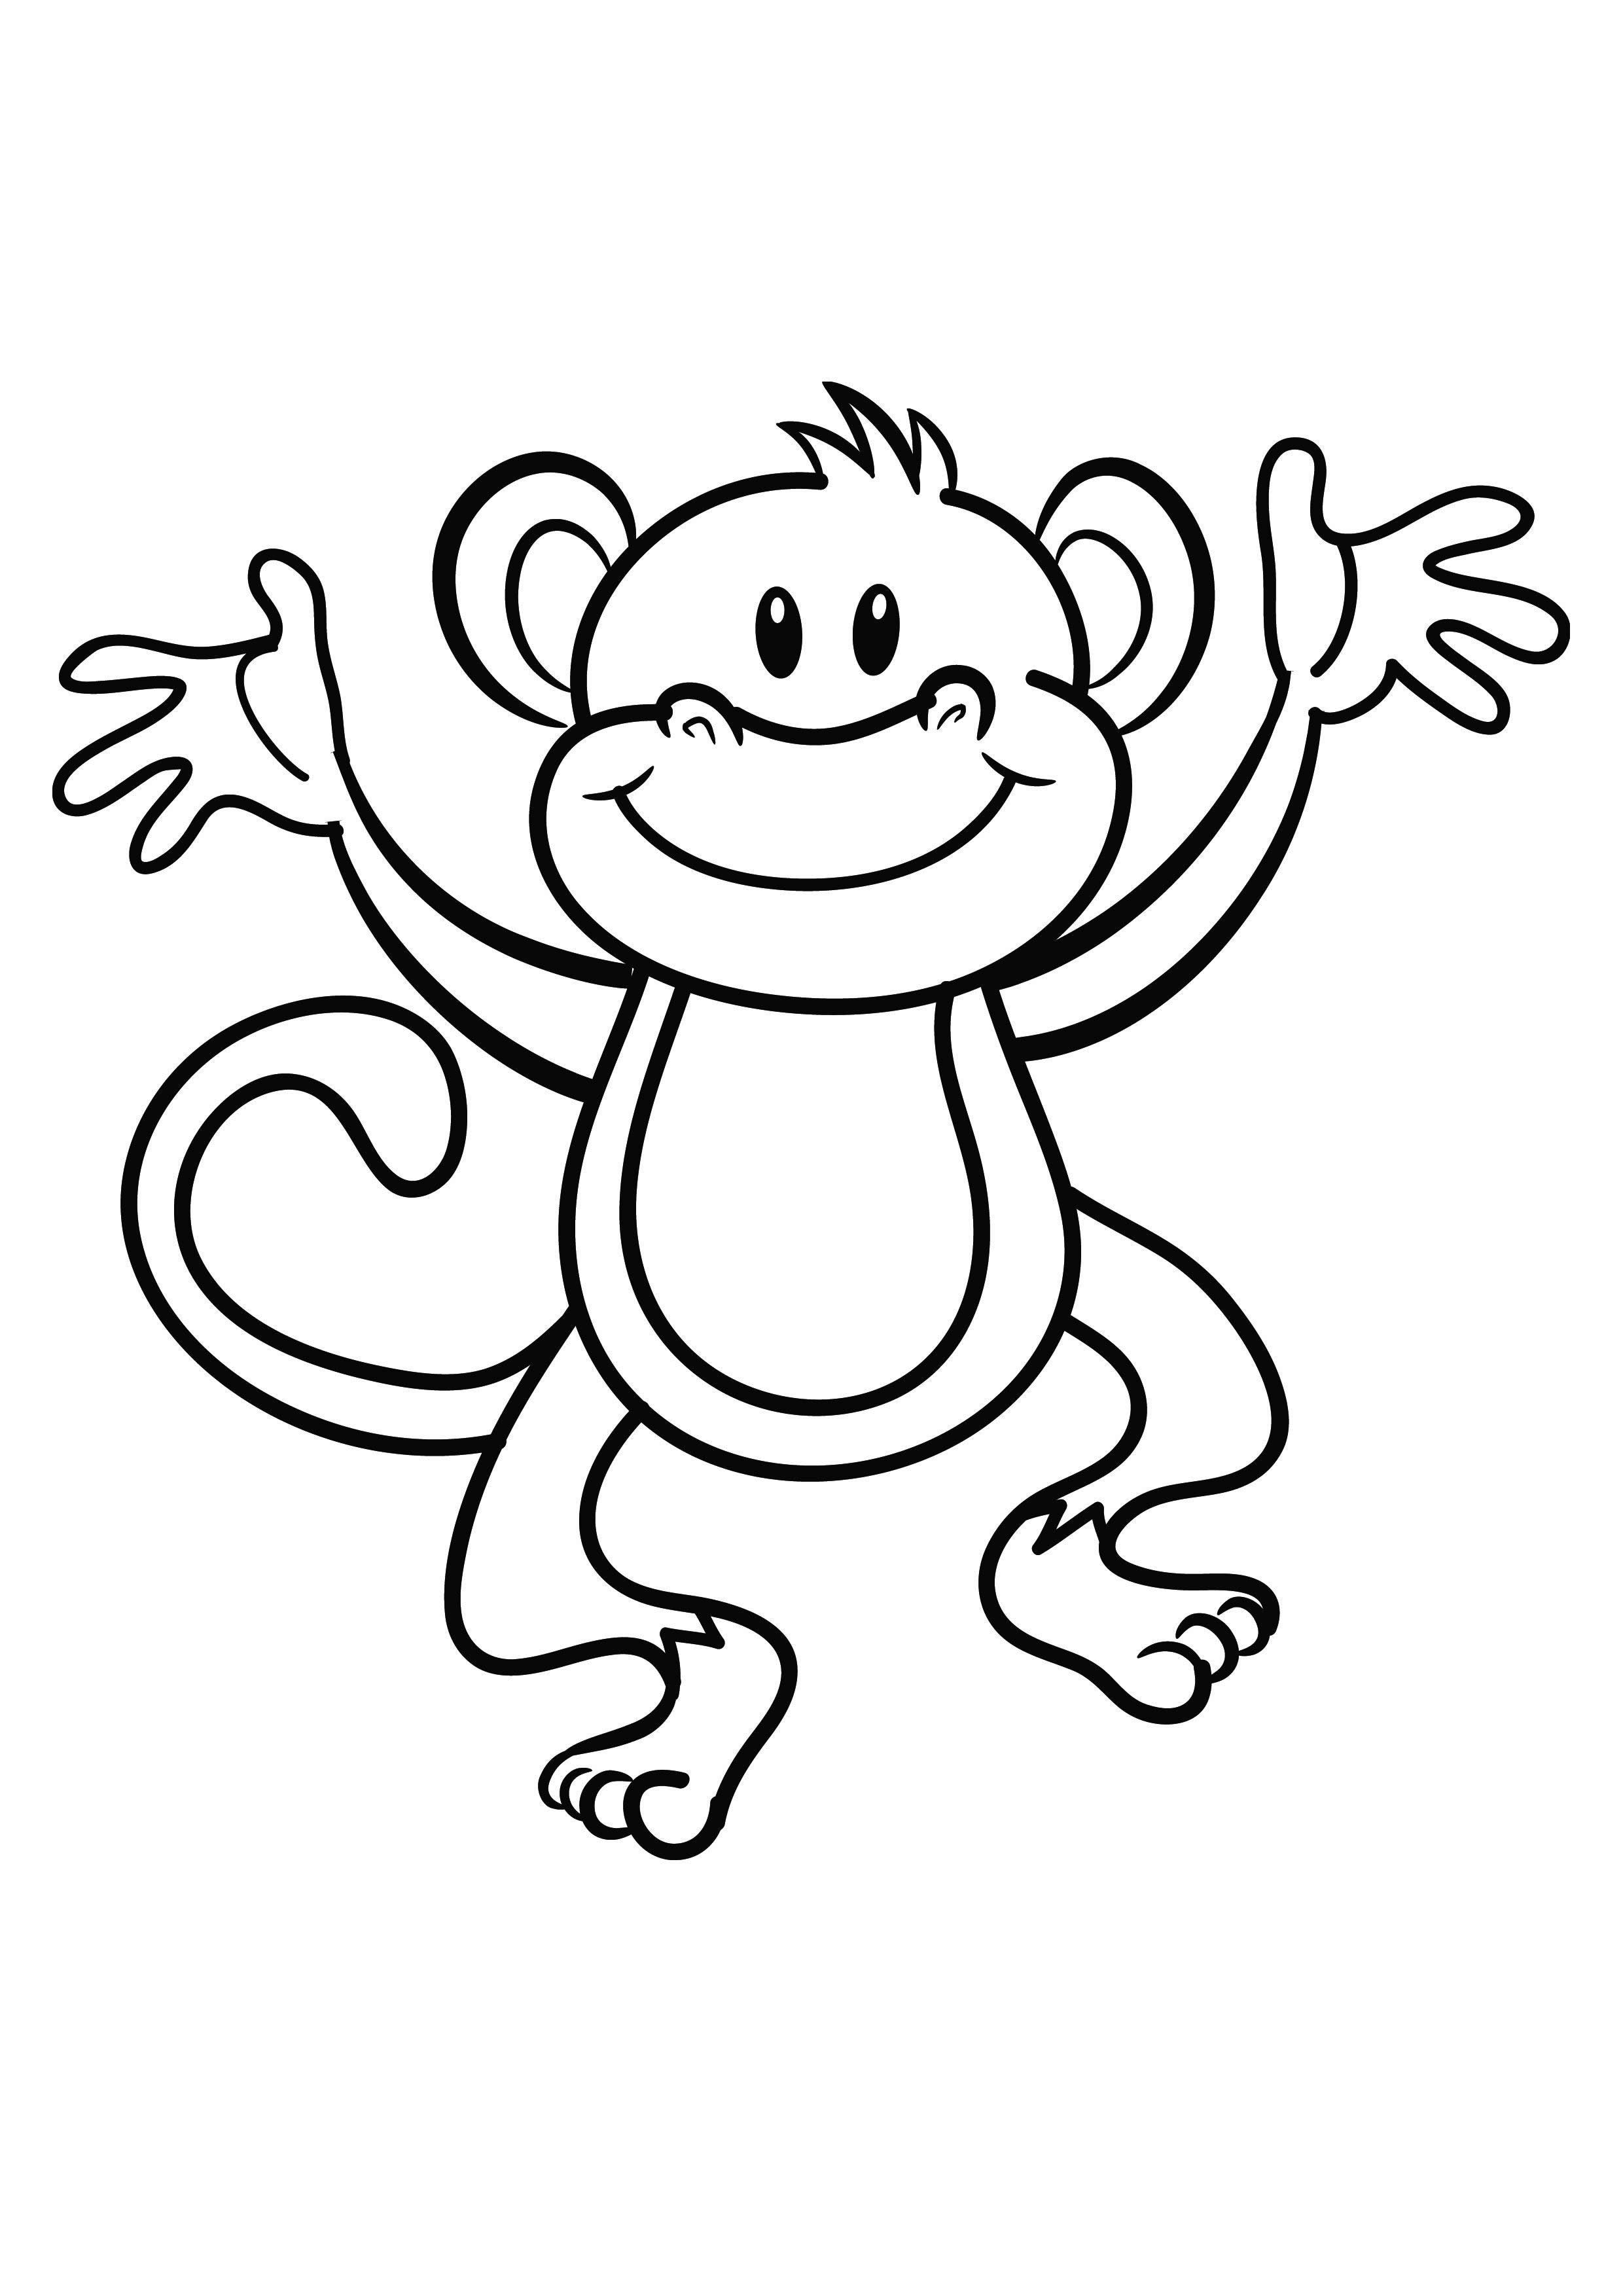 carnival monkey coloring pages - photo#44